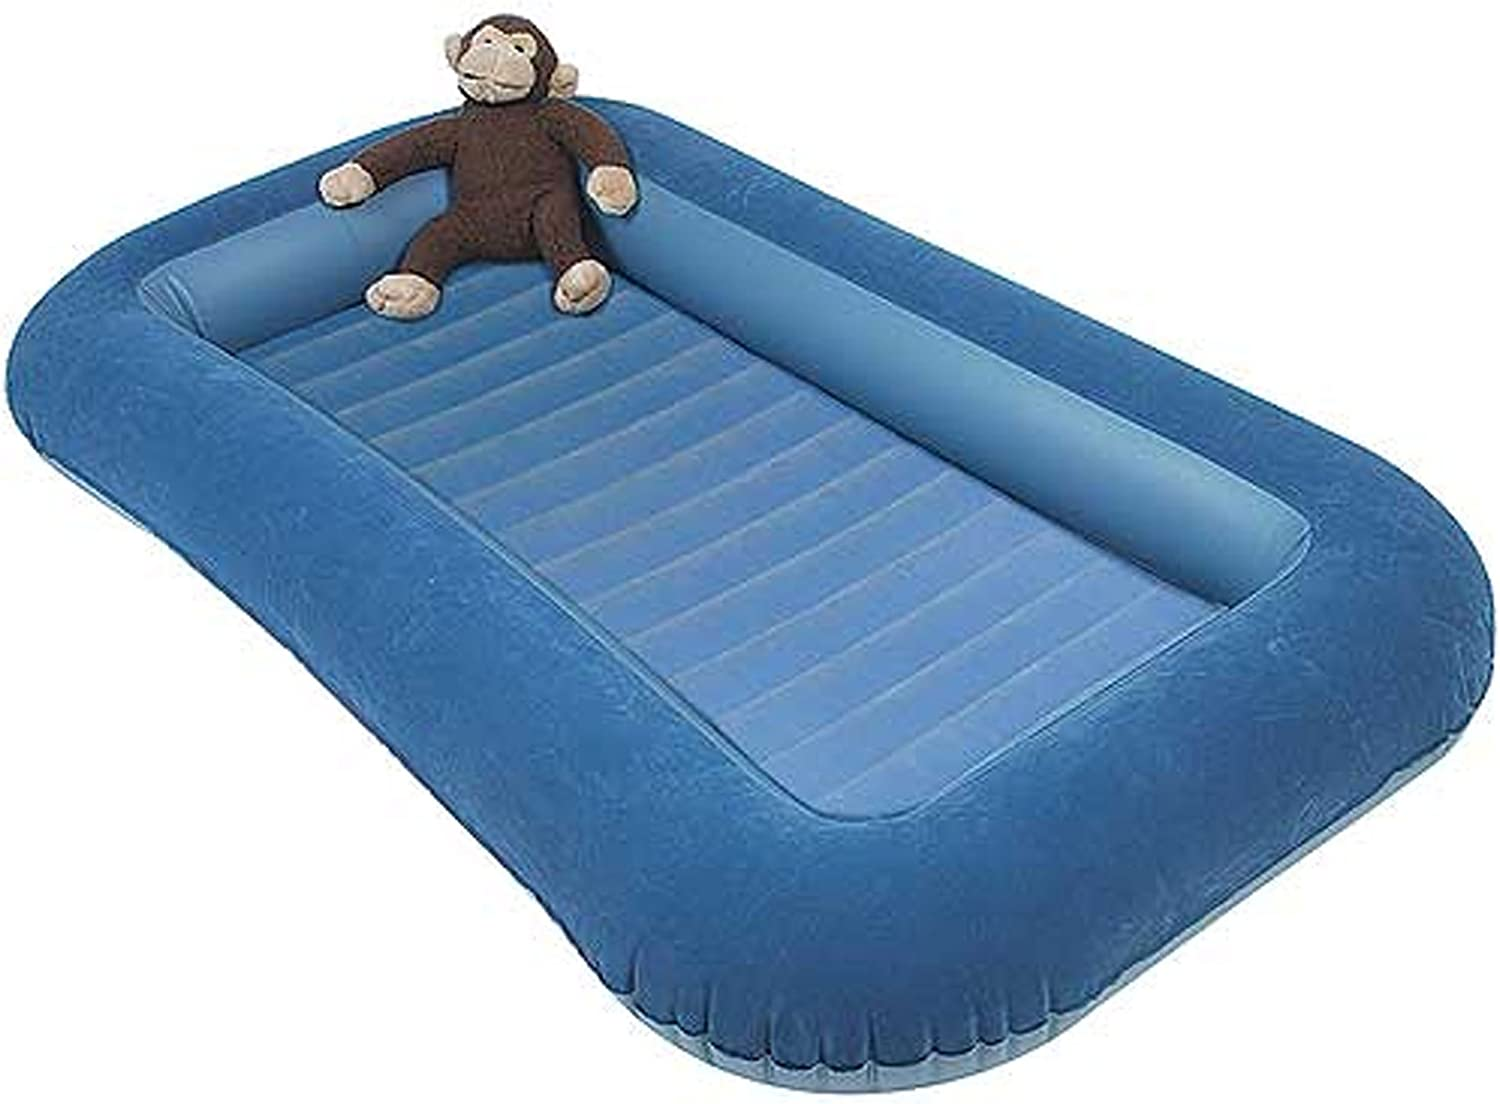 KAMPA JUNIOR CHILDS AIRBED WITH BUMPER SIDES GIRLS PINK FREE DELIVERY